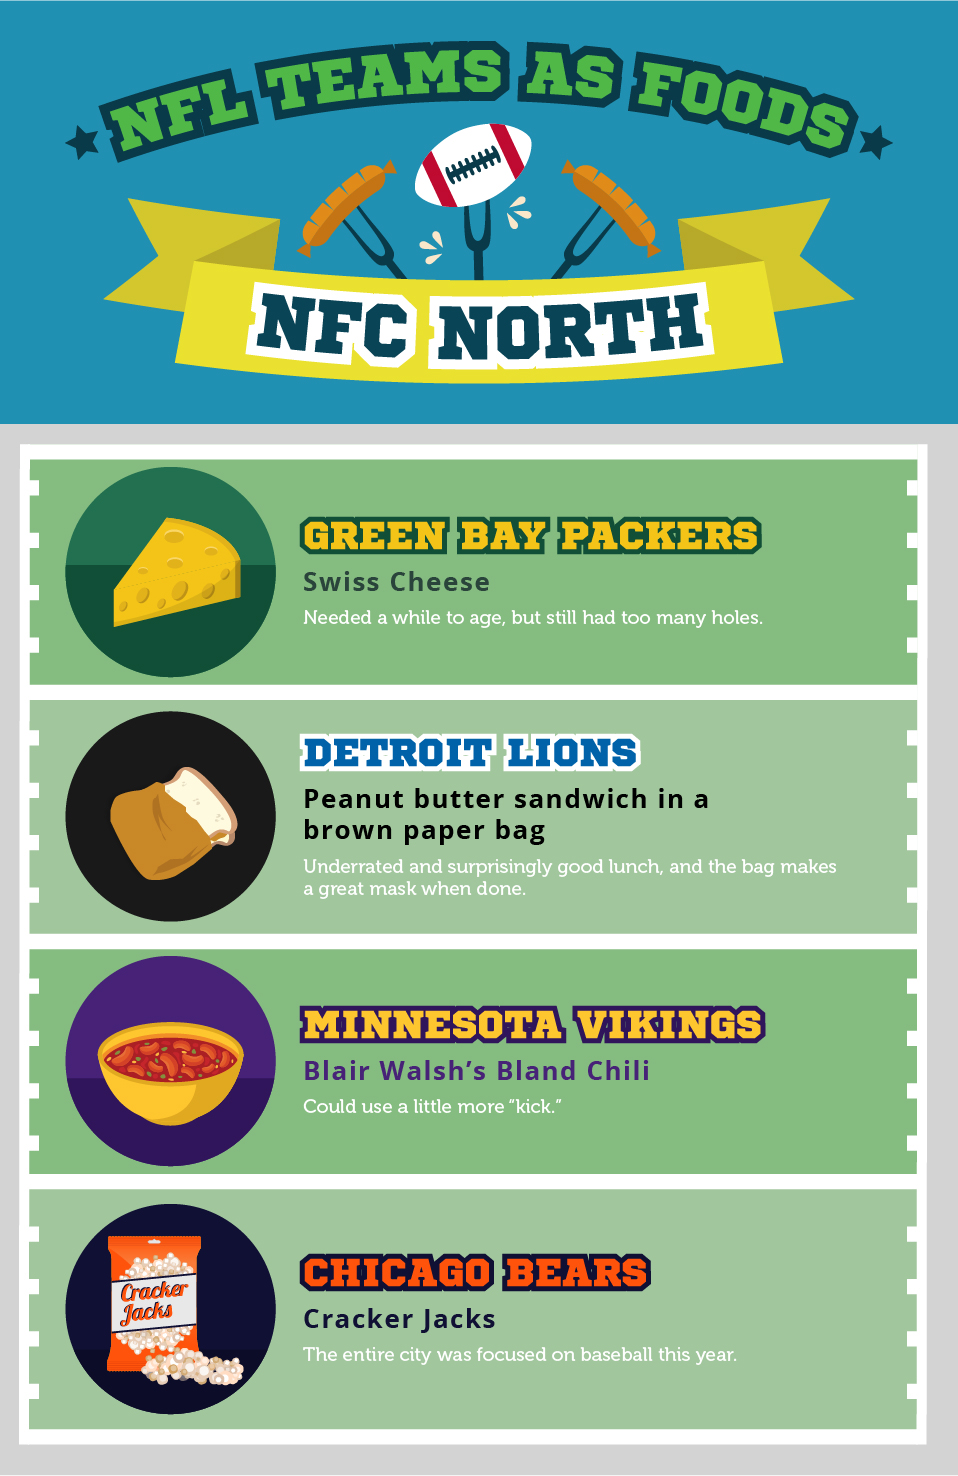 NFL Teams as Food: NFC North